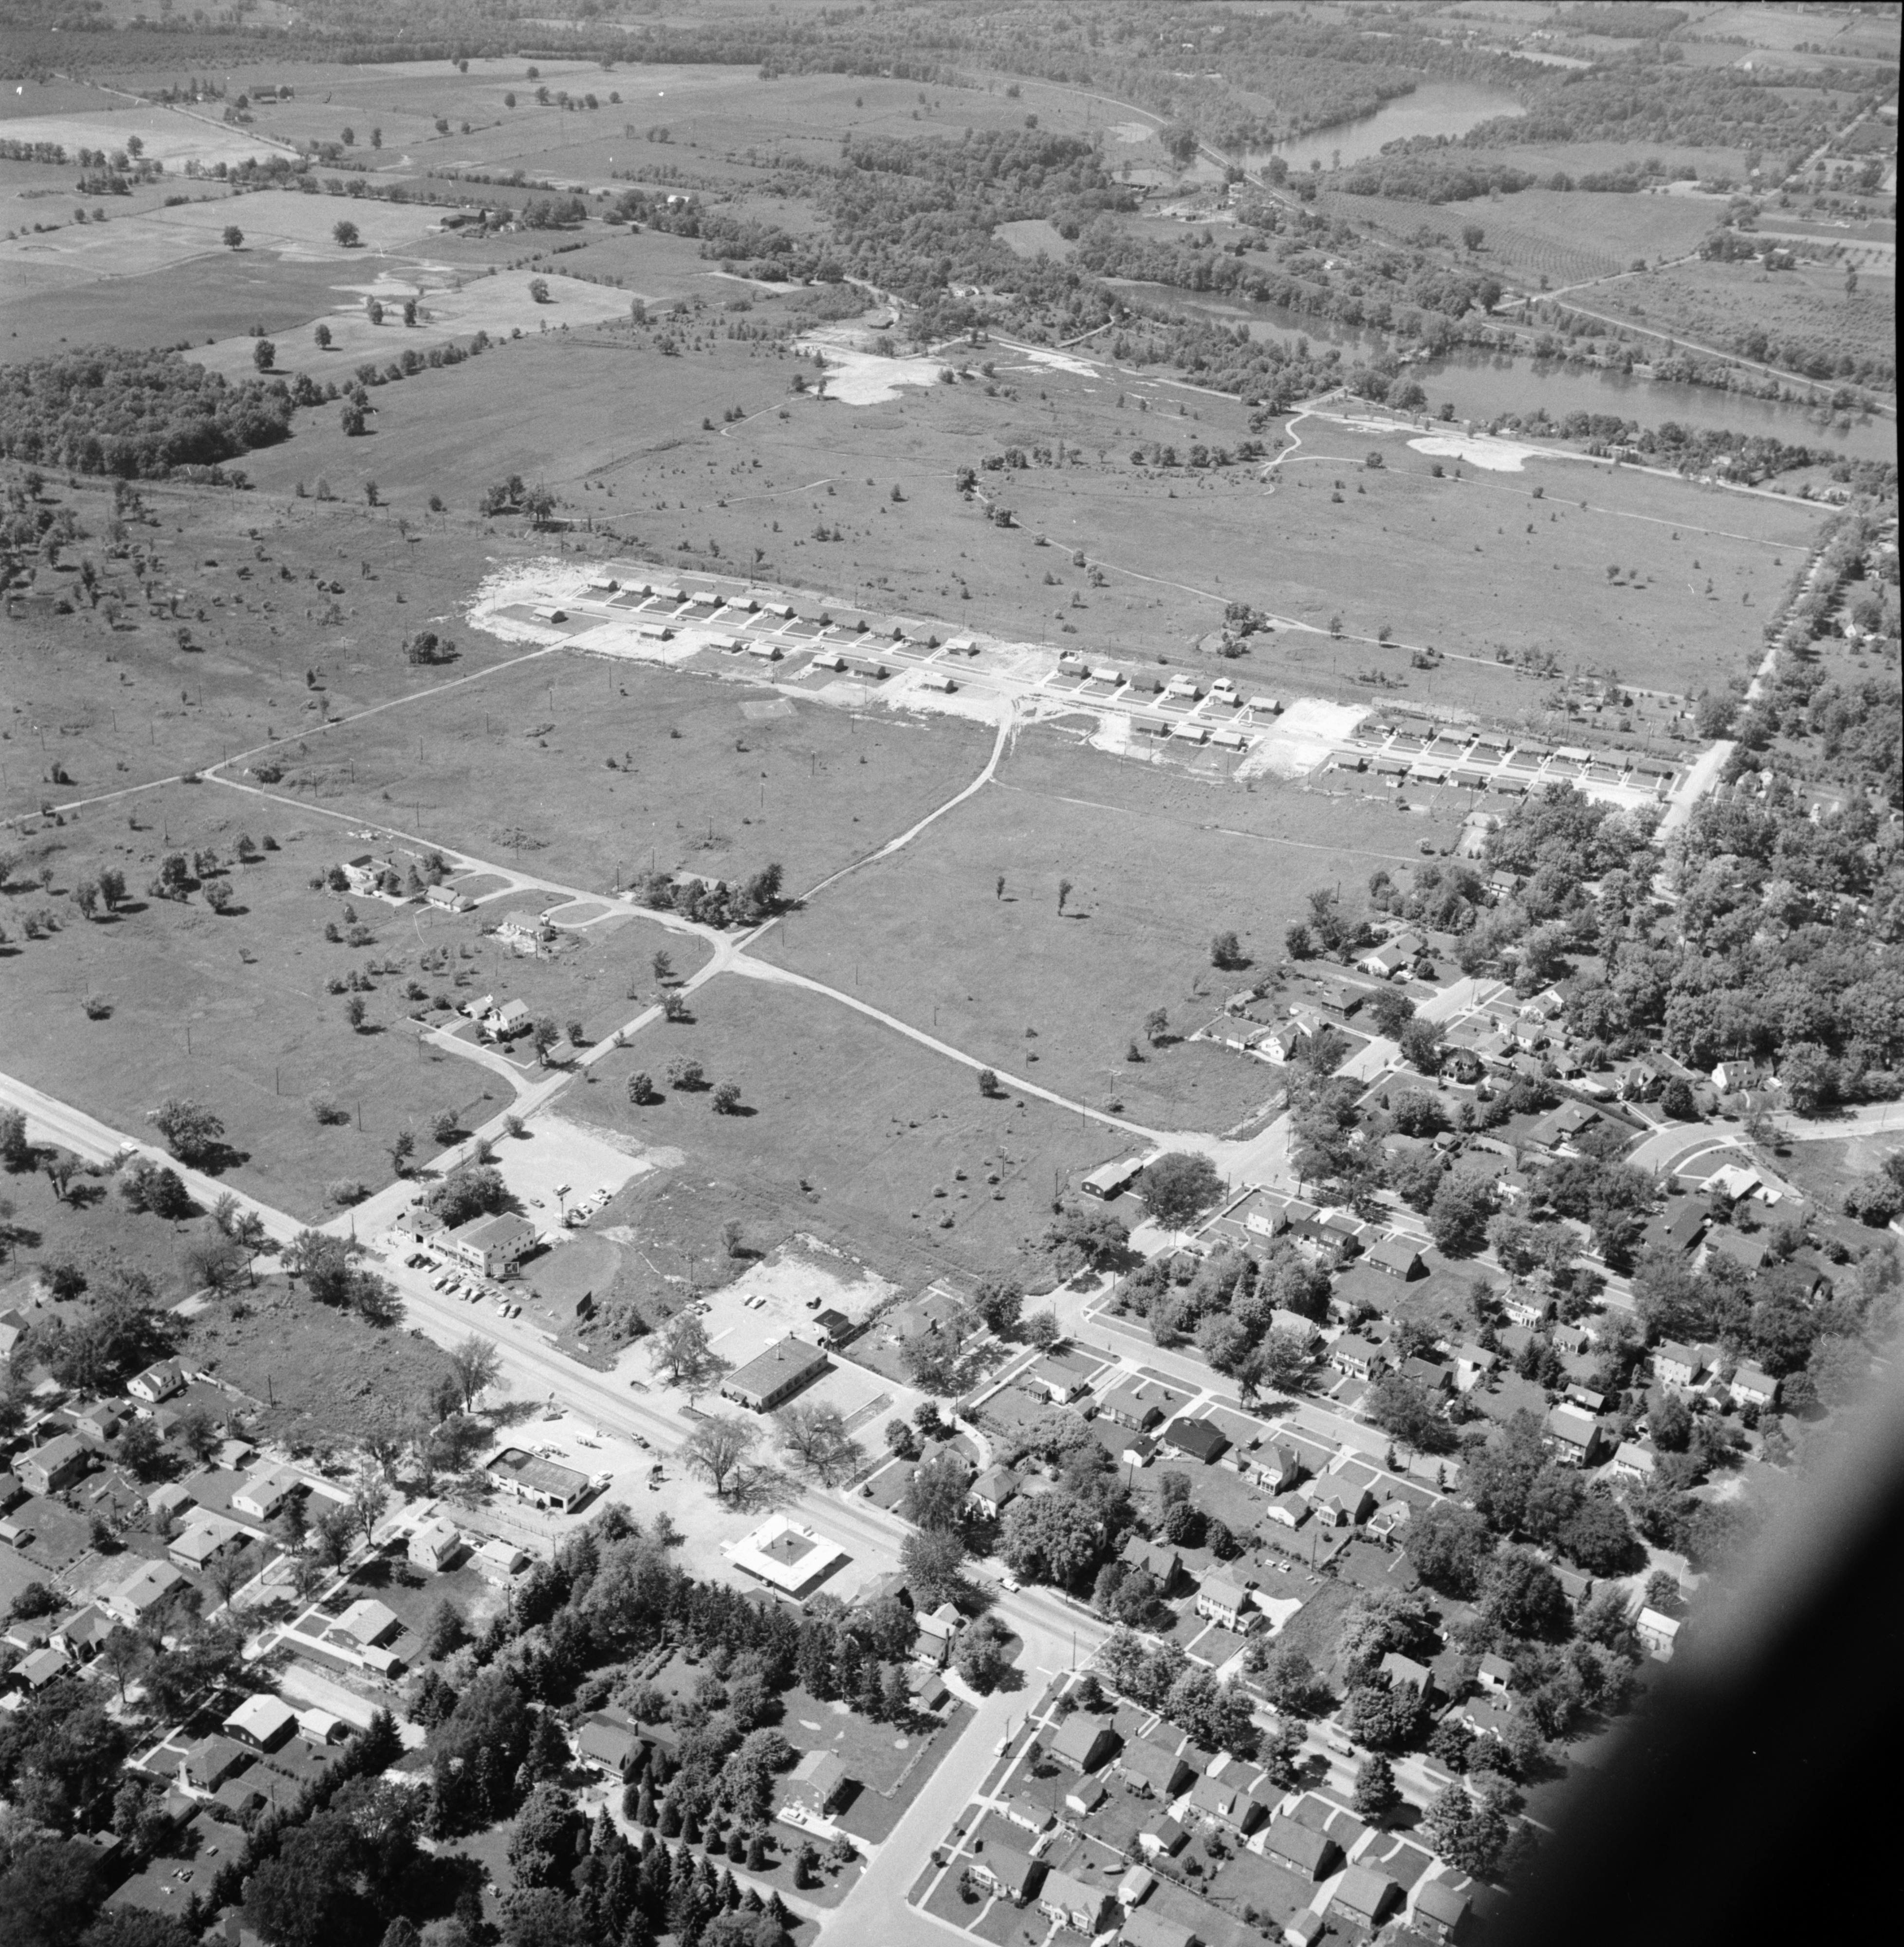 Aerial Photograph of College Heights Subdivision, Ypsilanti, July 1957 image